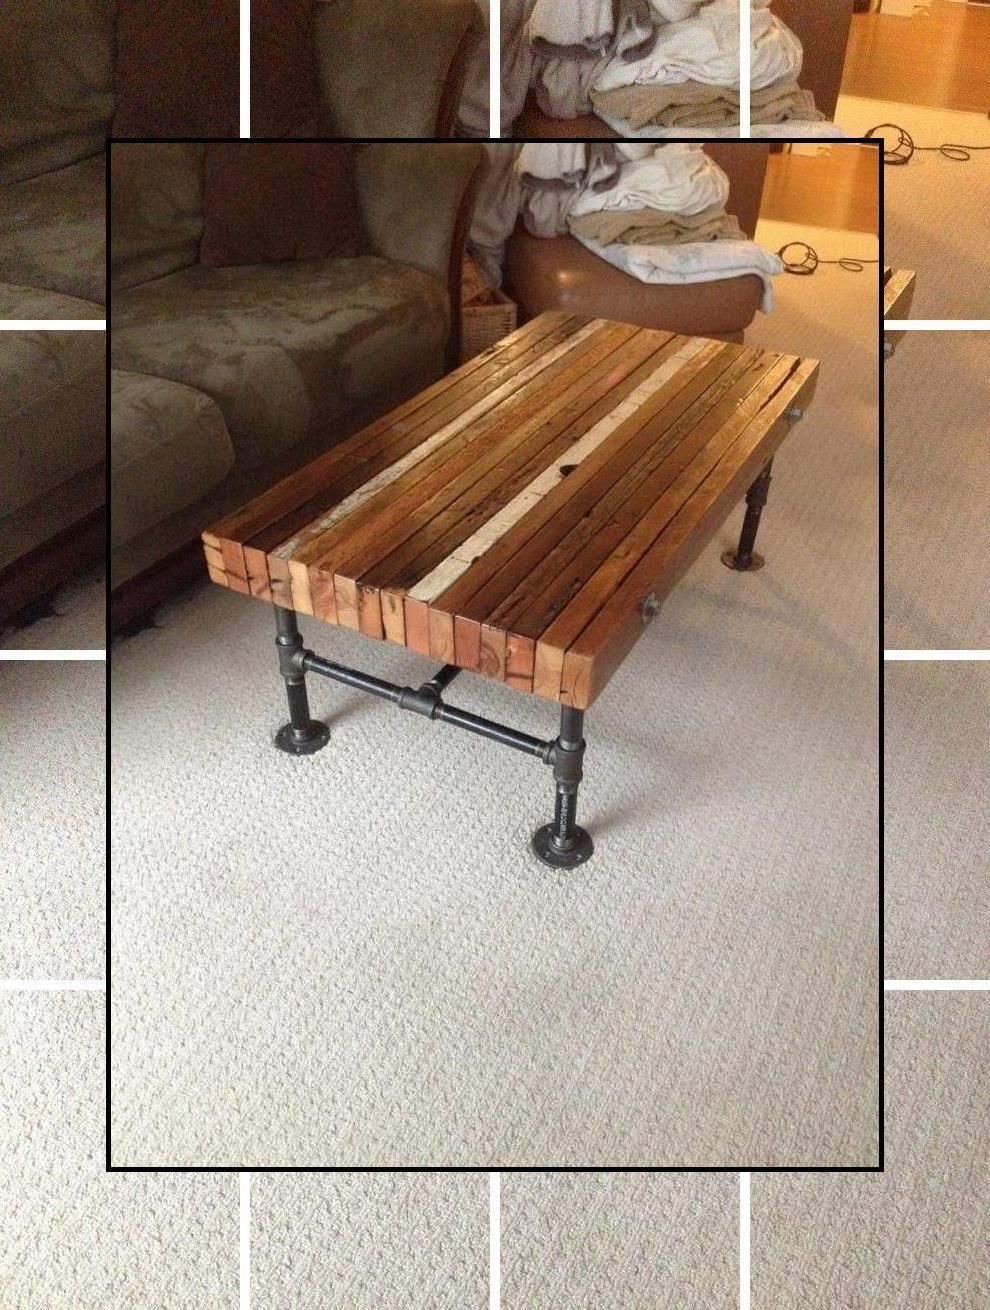 Build Your Own Furniture Plans Upcycled Furniture Diy Diy Furniture Tools Upcycled Furniture Diy Furniture Pallet Furniture Outdoor